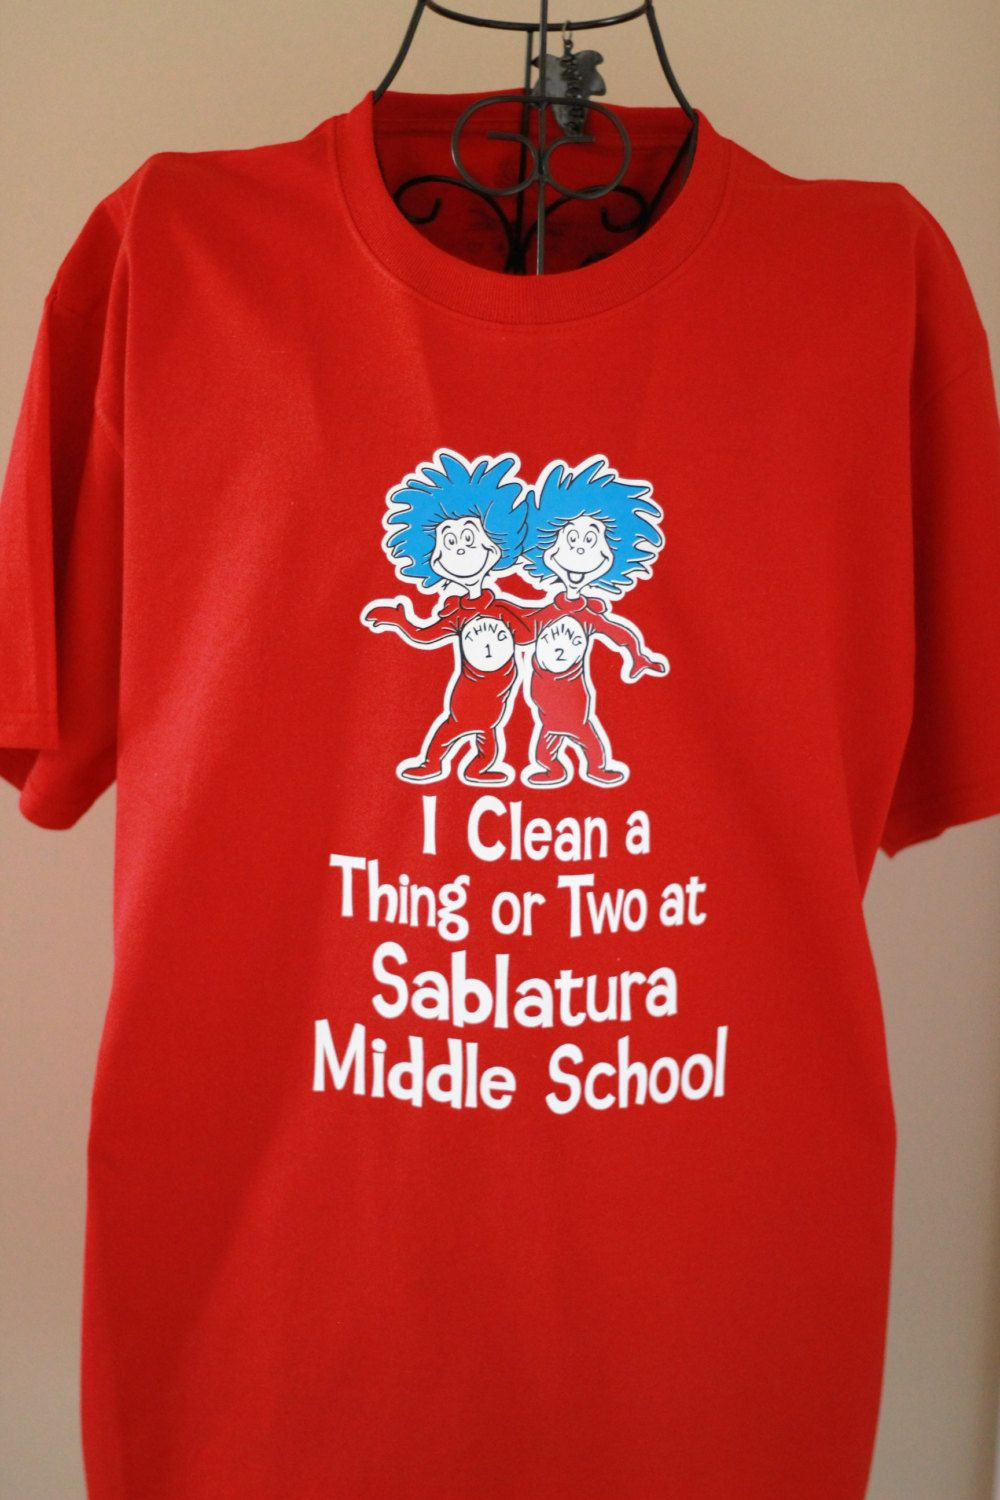 d3633edf I Clean a Thing or Two, Custodian Shirt, School Orientation, First Day of  School, Dr Seuss inspired t-shirt customized with YOUR school name by ...